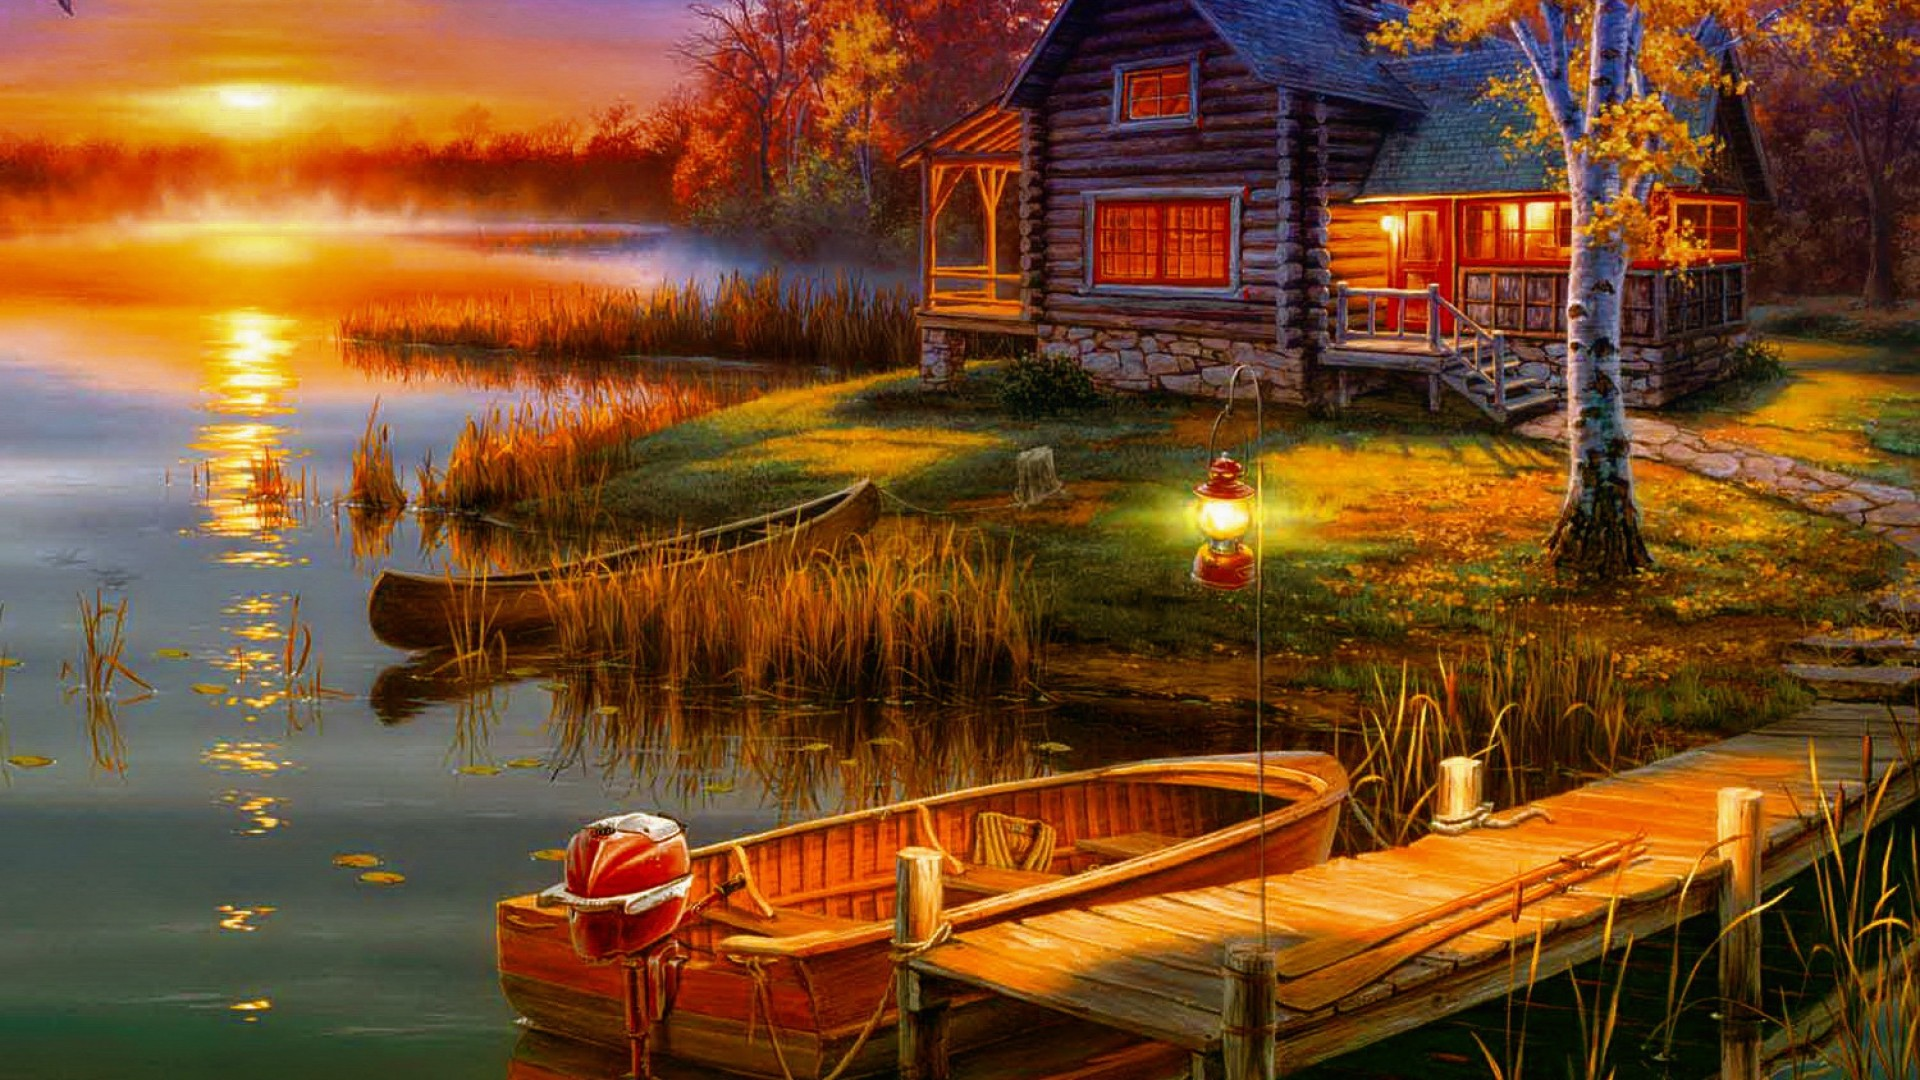 Peaceful Photo Download - Hd Wallpapers Download Free , HD Wallpaper & Backgrounds